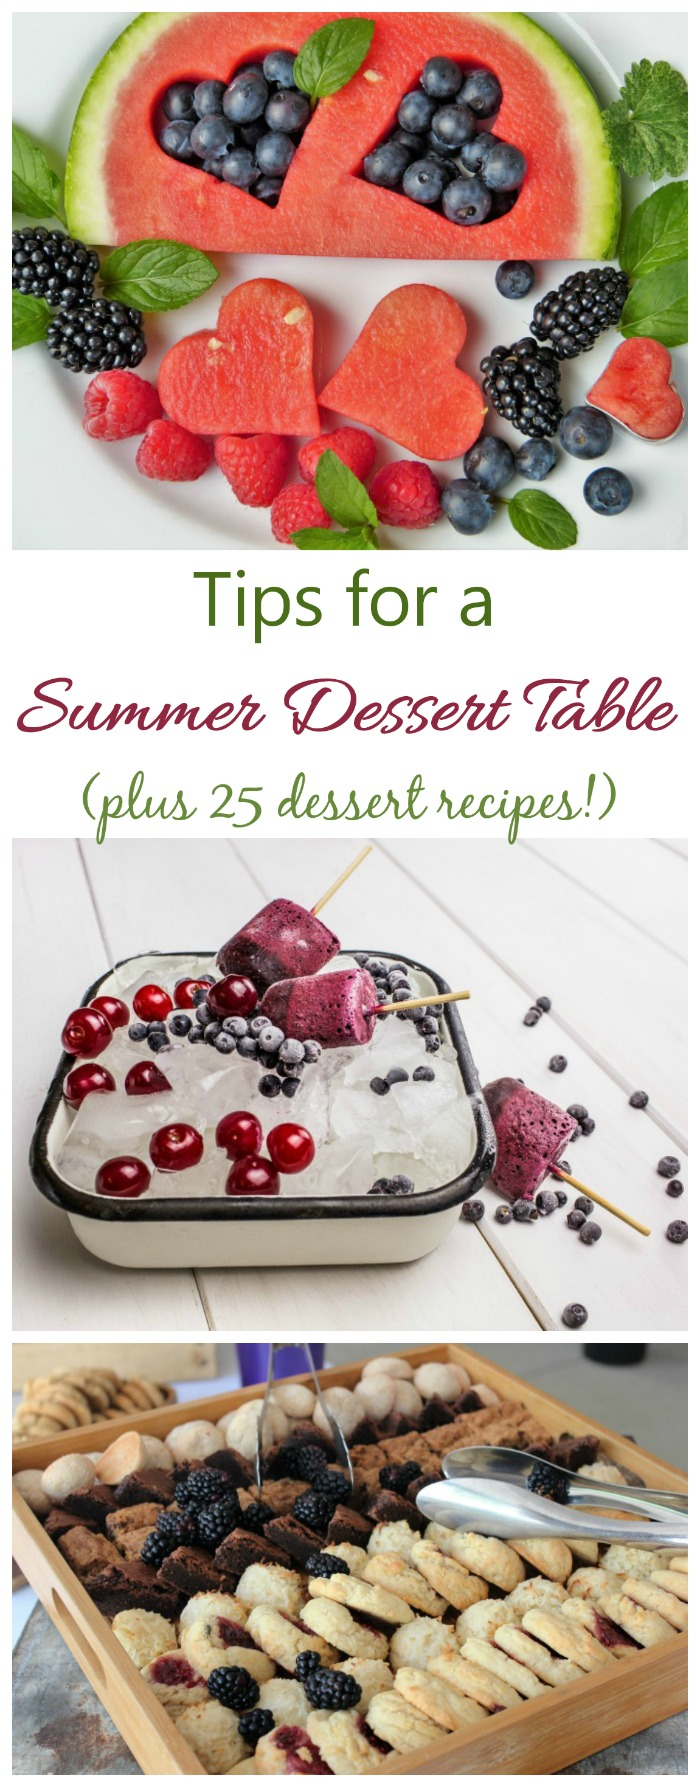 These tips for a summer dessert table show what to serve that will take the heat.